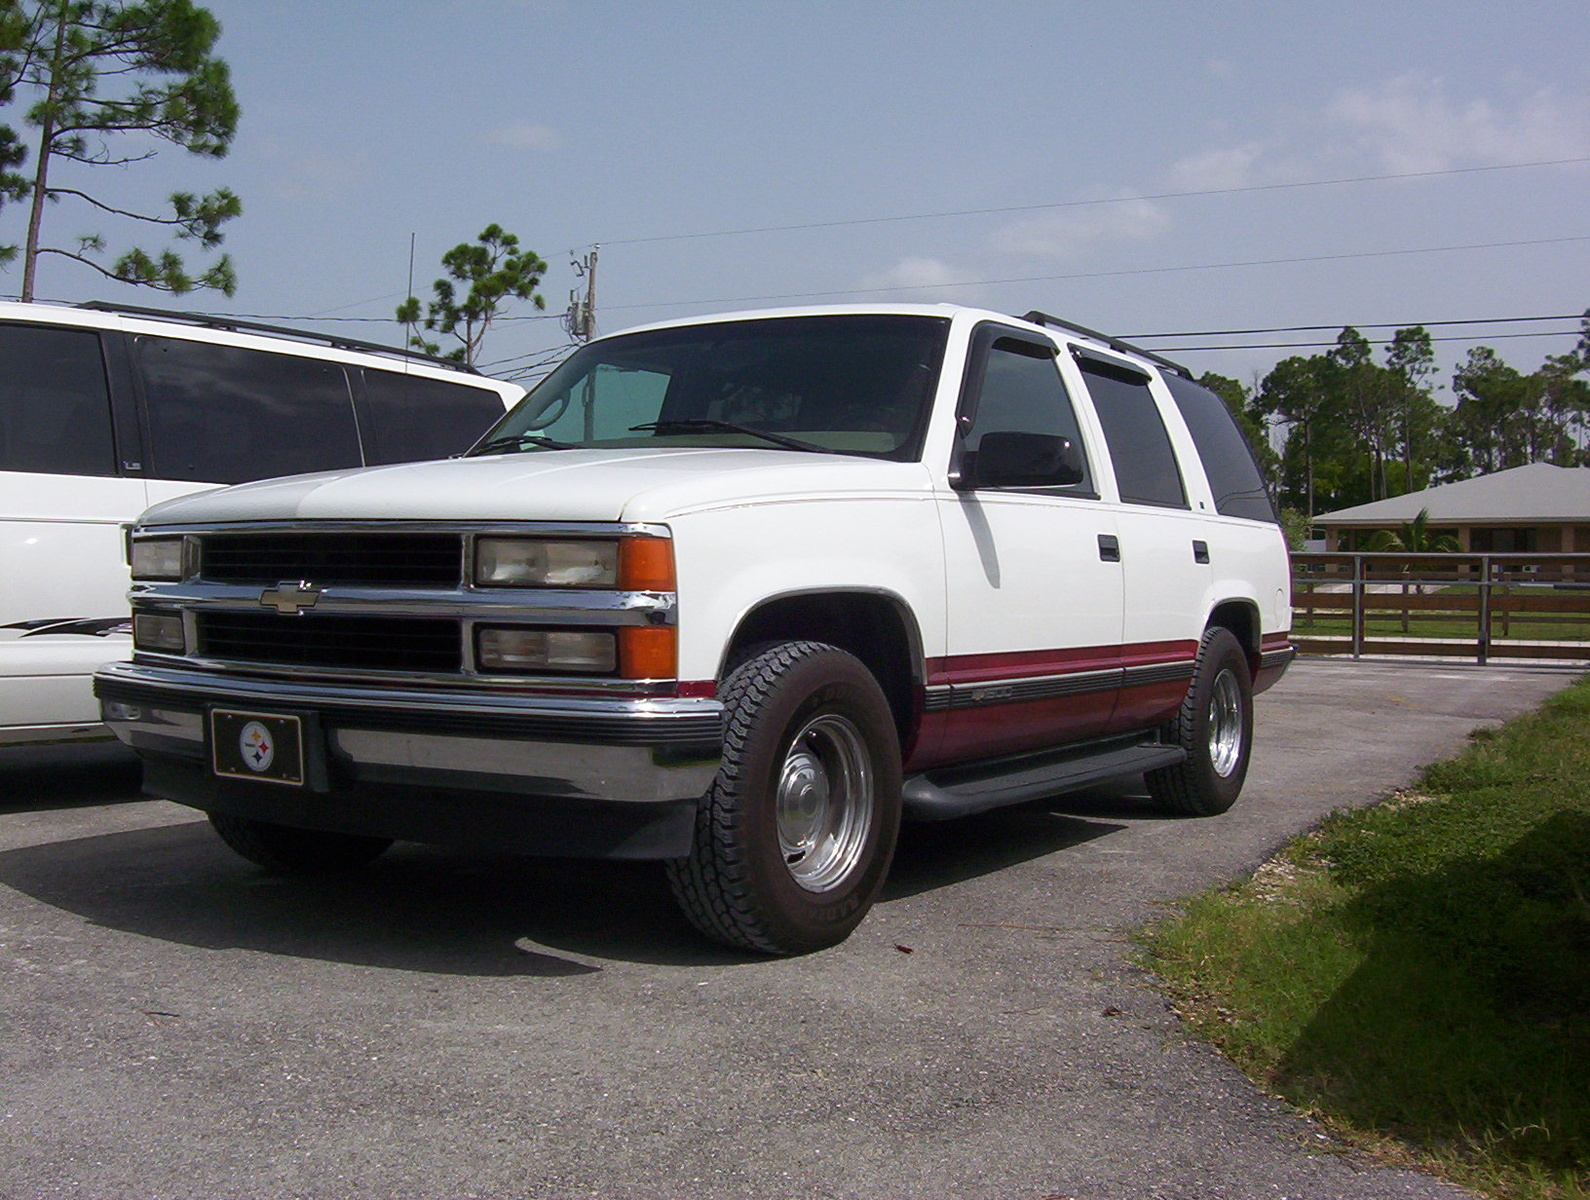 Picture of 1997 chevrolet tahoe 4 dr lt suv exterior gallery_worthy